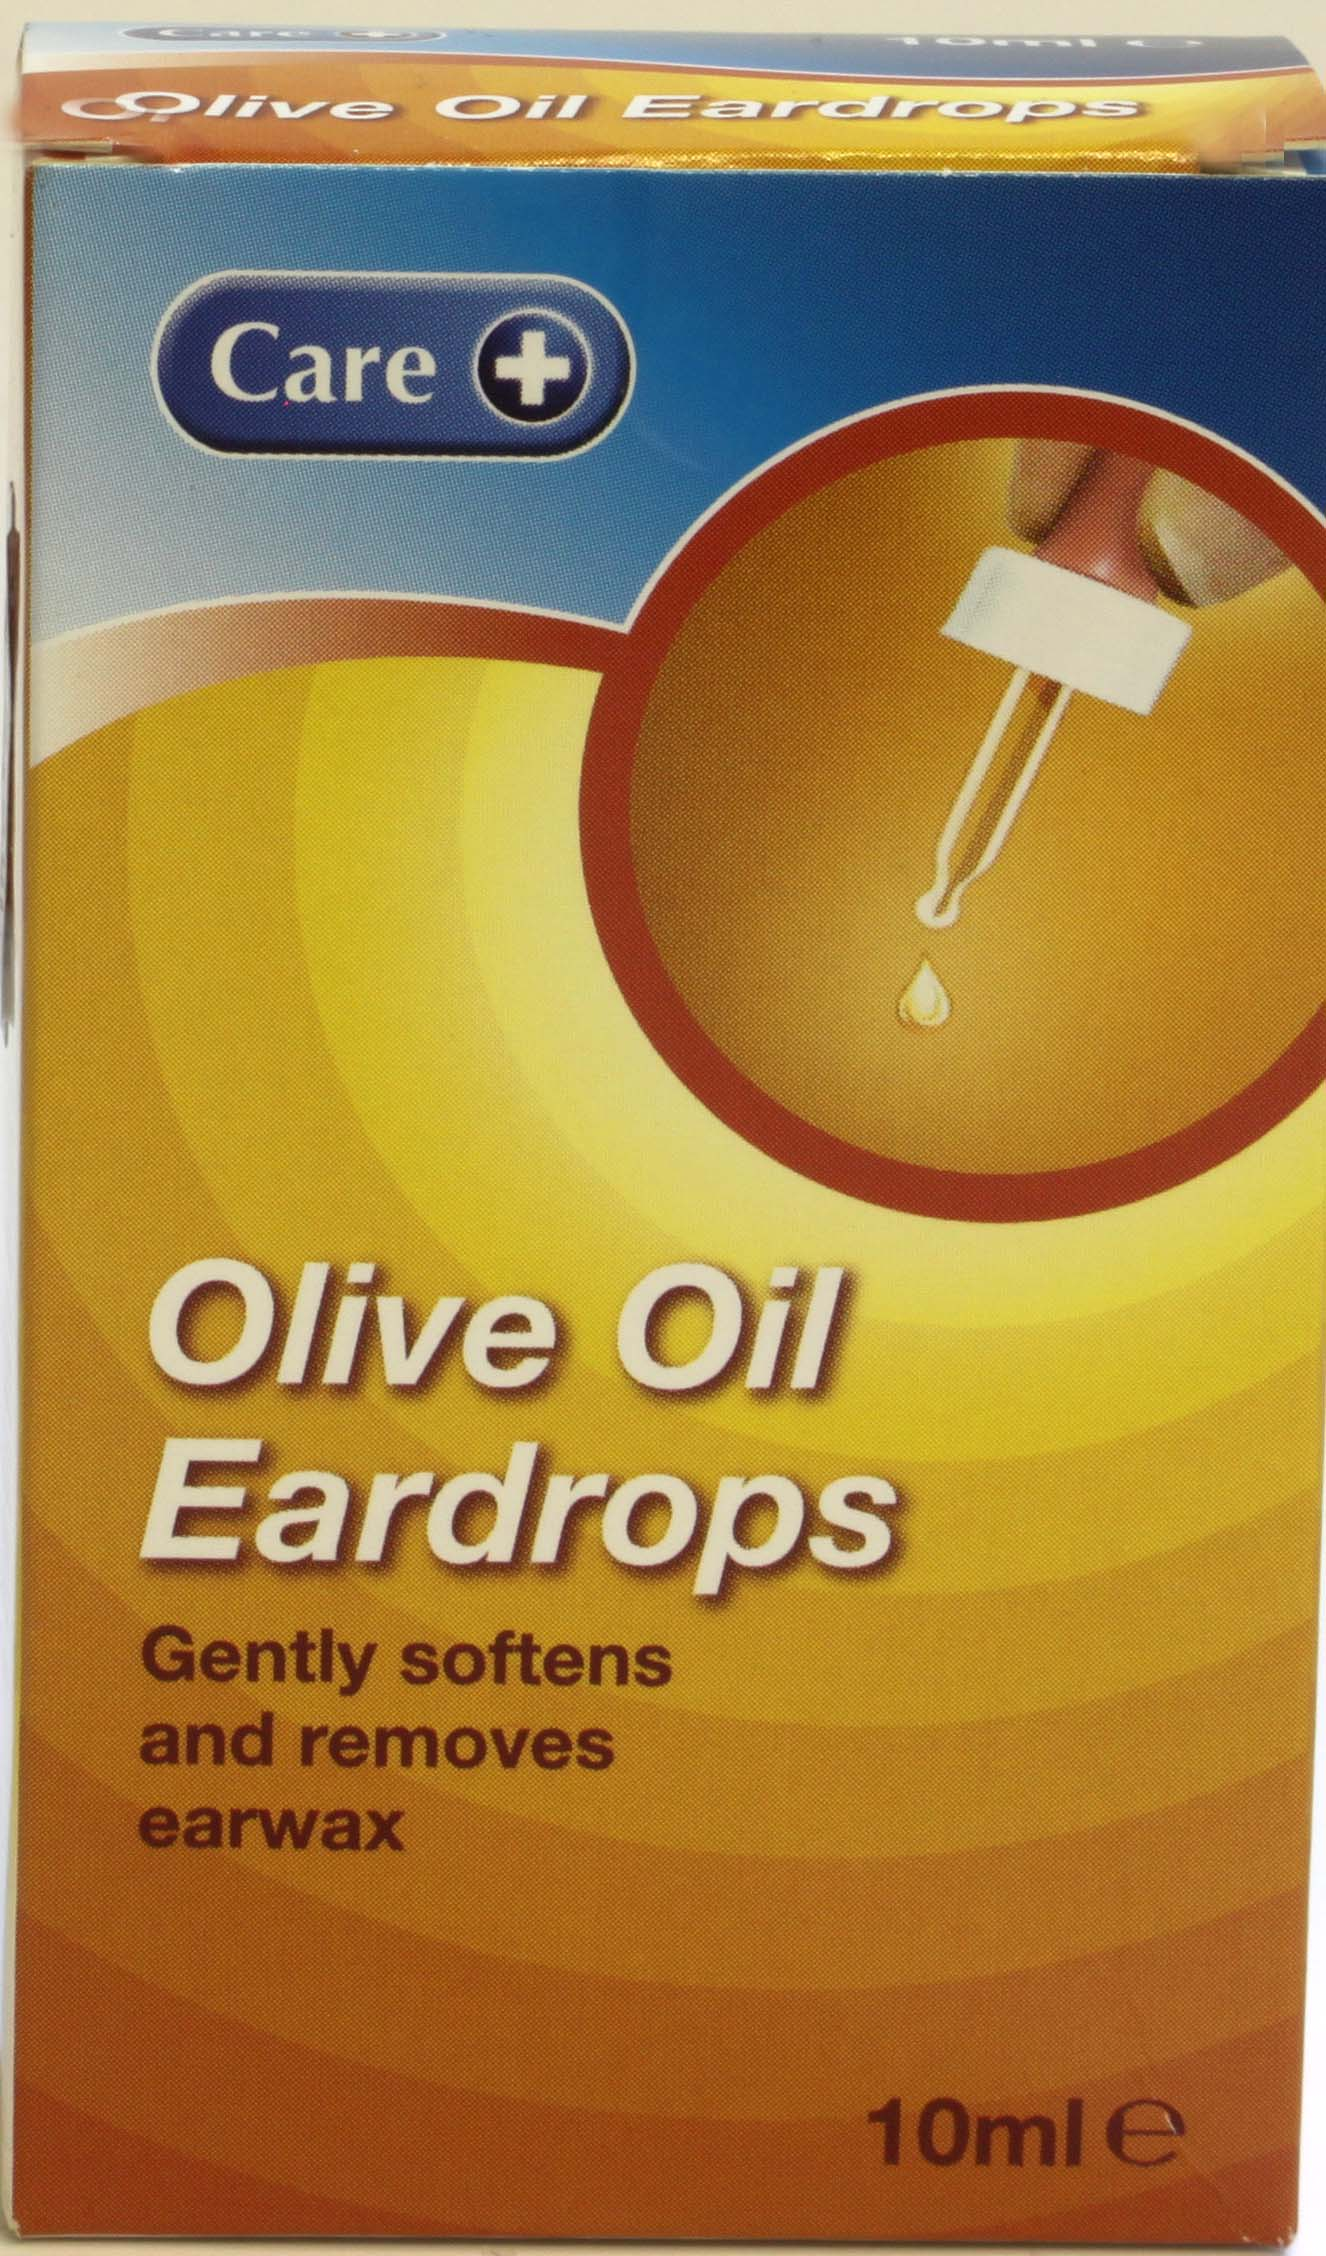 Olive Oil Eardrops (Care)- 10ml